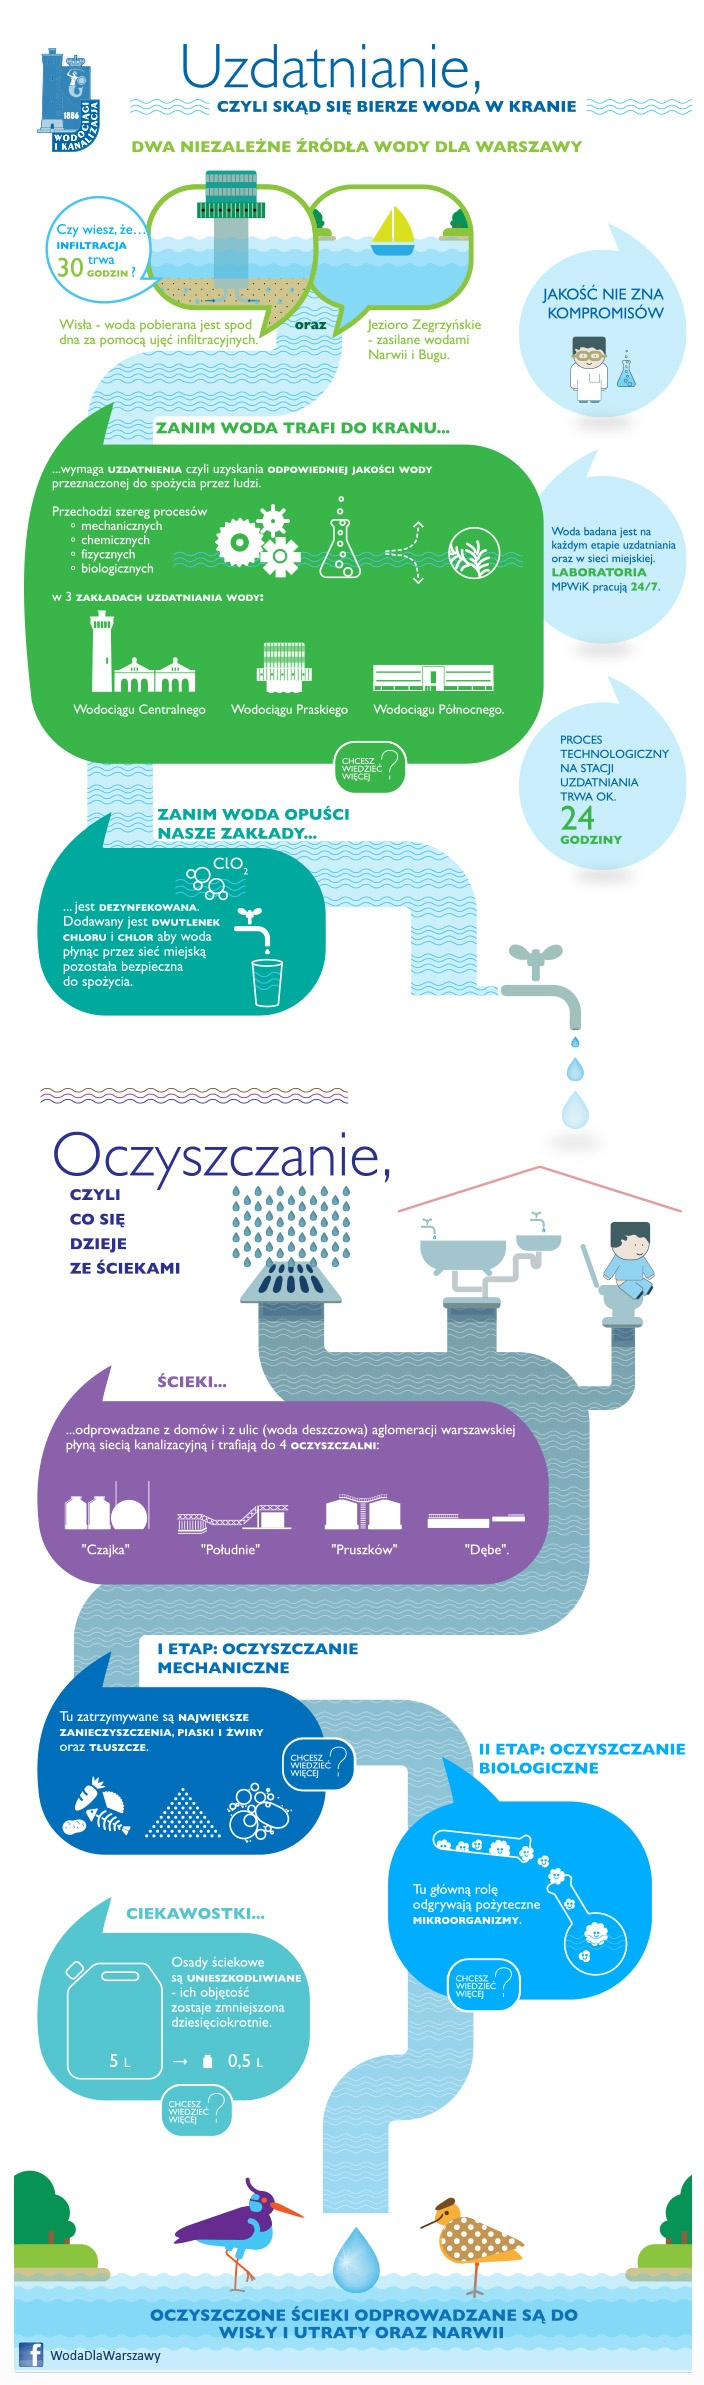 Warsaw's Water Supply